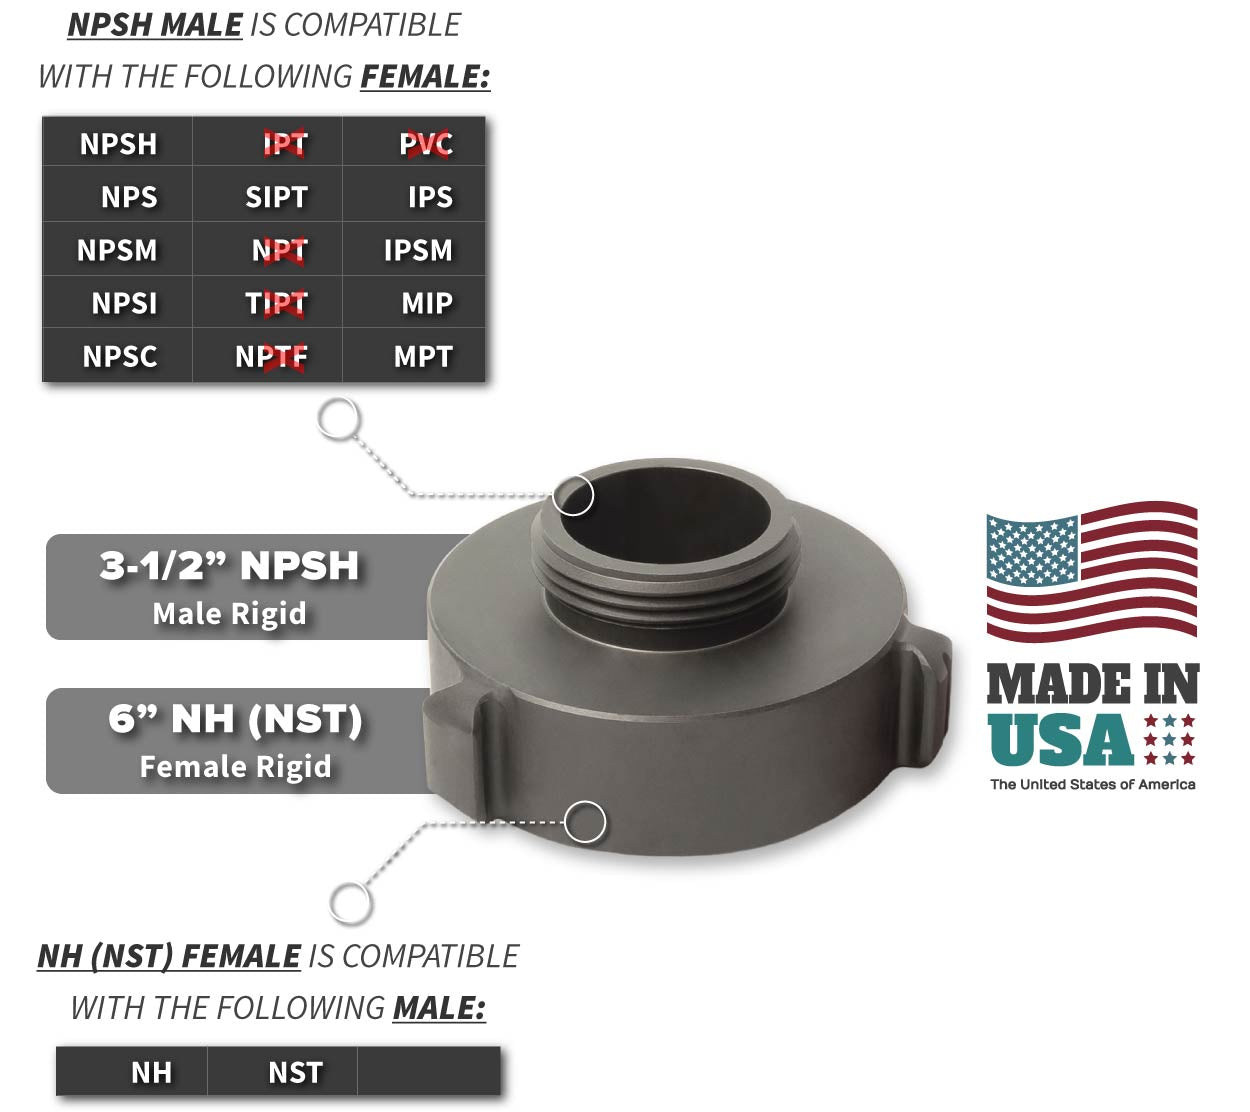 6 Inch NH-NST Female x 3.5 Inch NPSH Male Compatibility Thread Chart